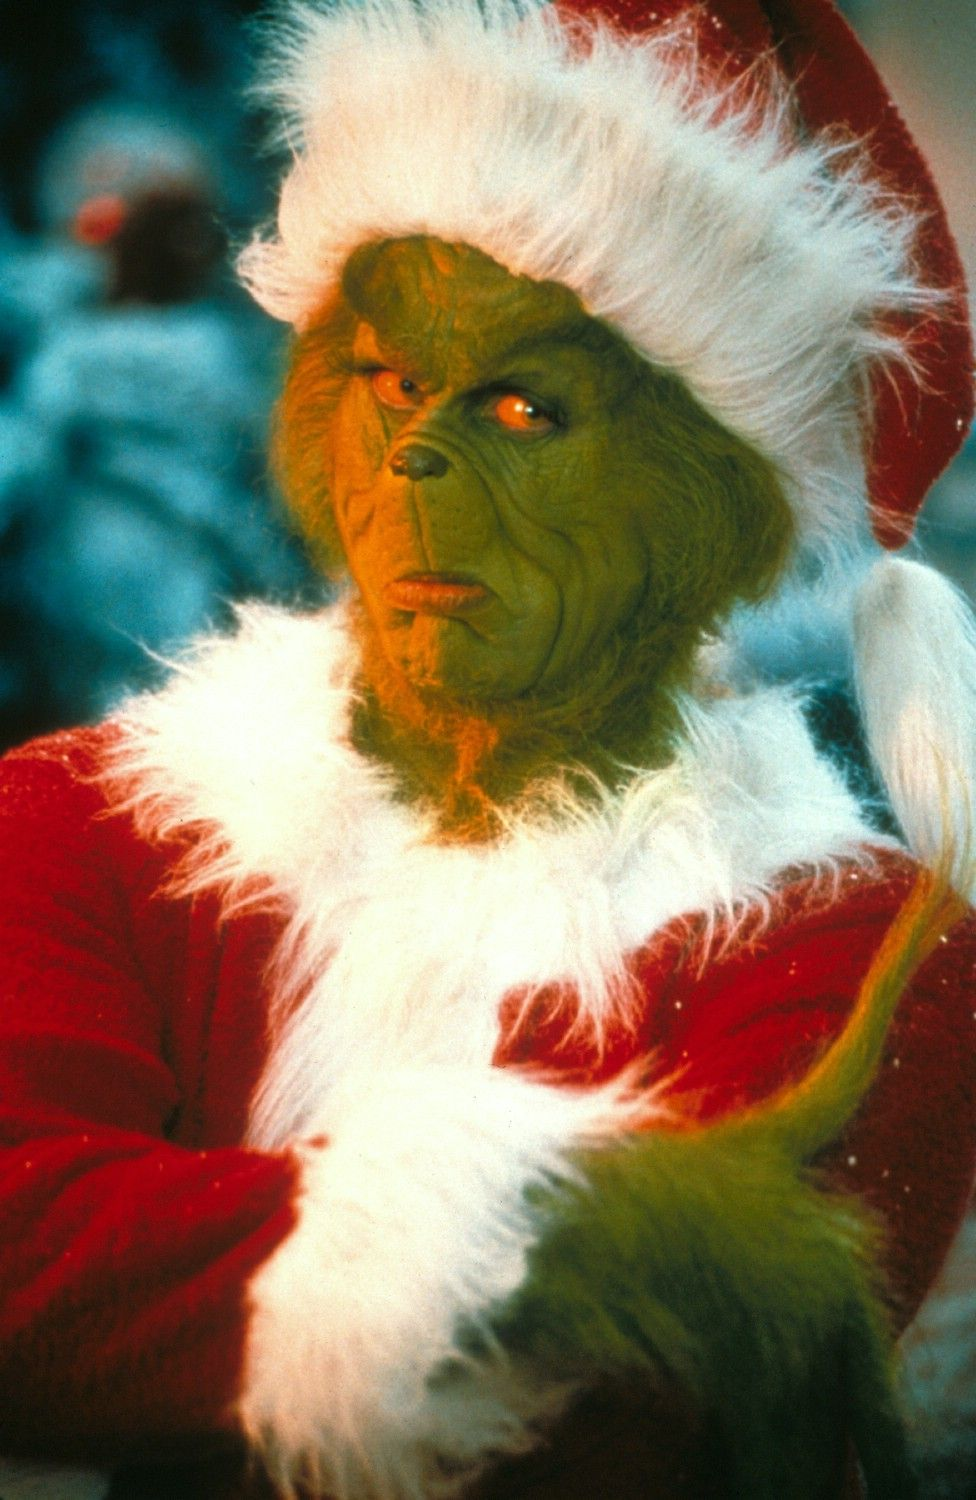 The Grinch - how-the-grinch-stole-christmas Photo | Jim Carrey ...